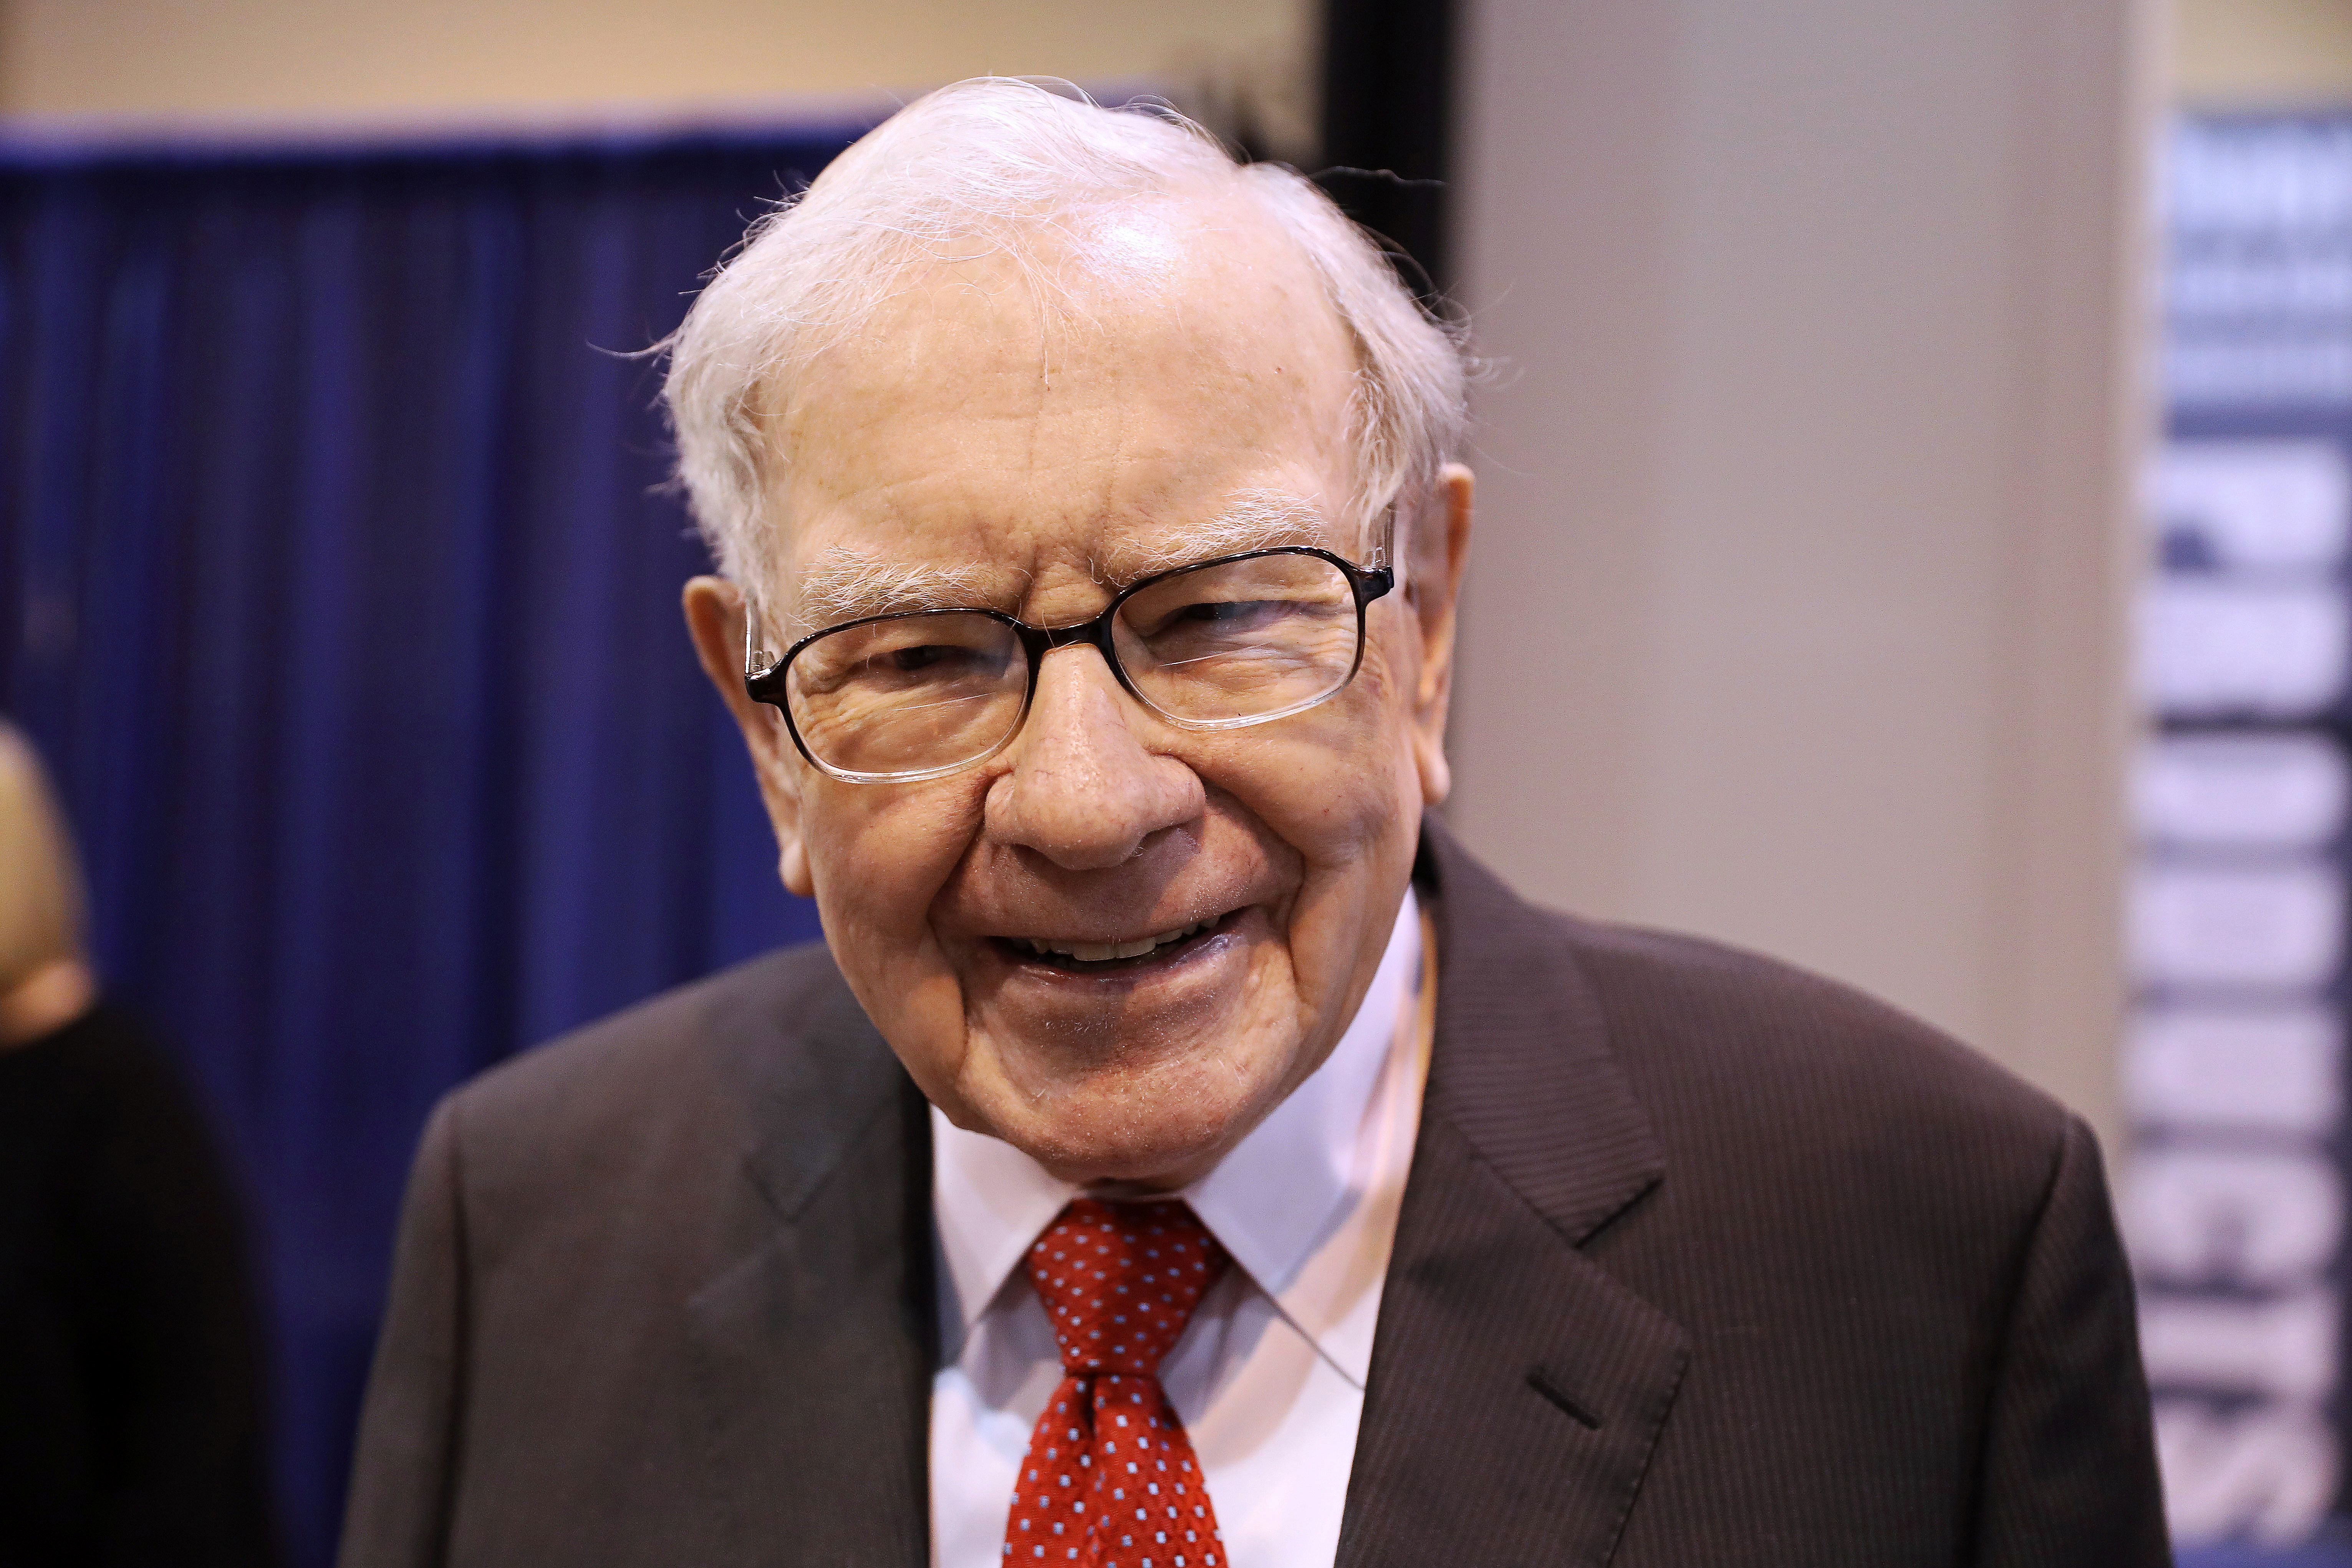 Wondrous Why Warren Buffett Bet On Israeli Company Iscar Paid Off Home Interior And Landscaping Ferensignezvosmurscom